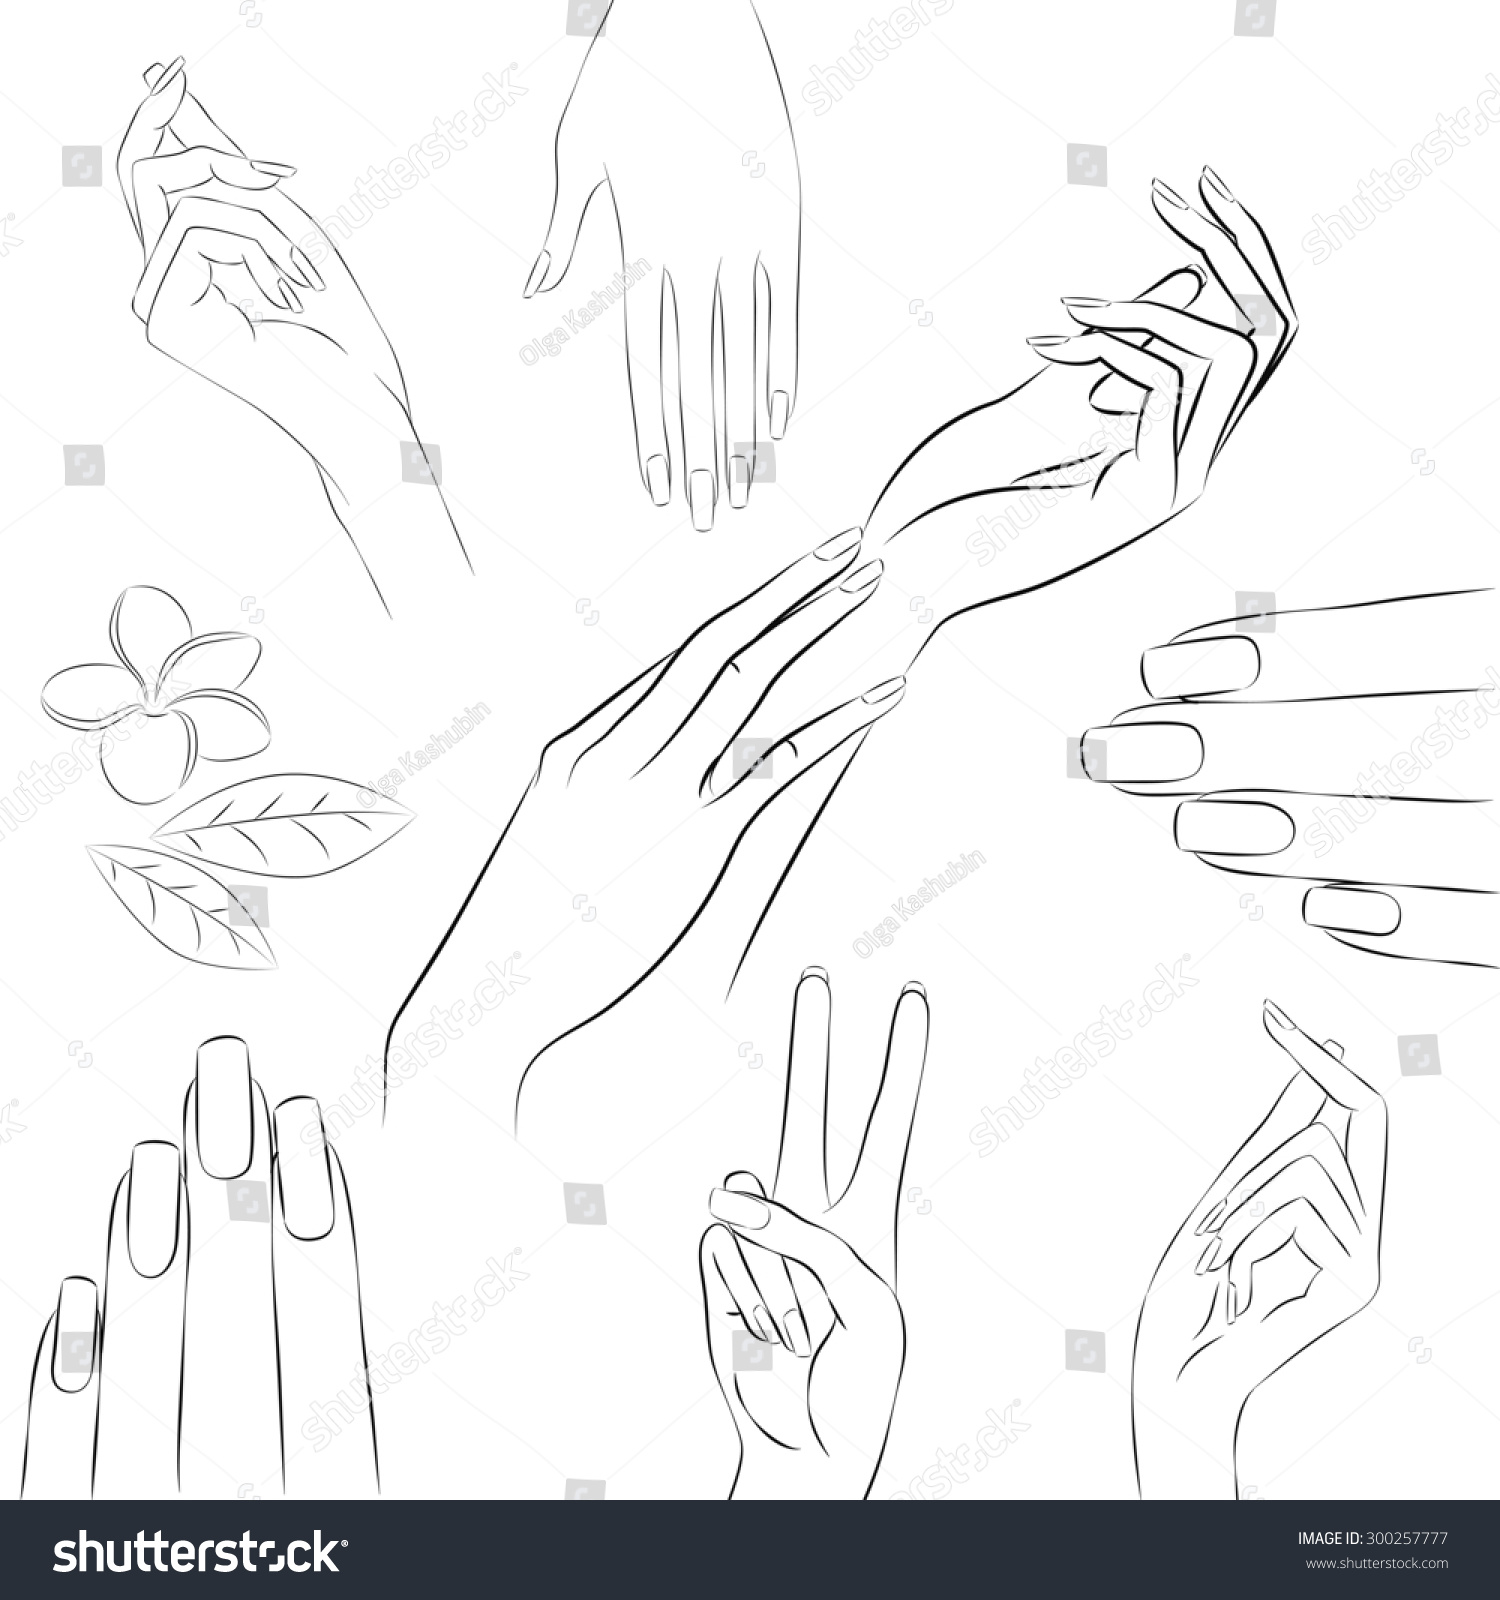 manicure hands collection hand drawn outline stock illustration